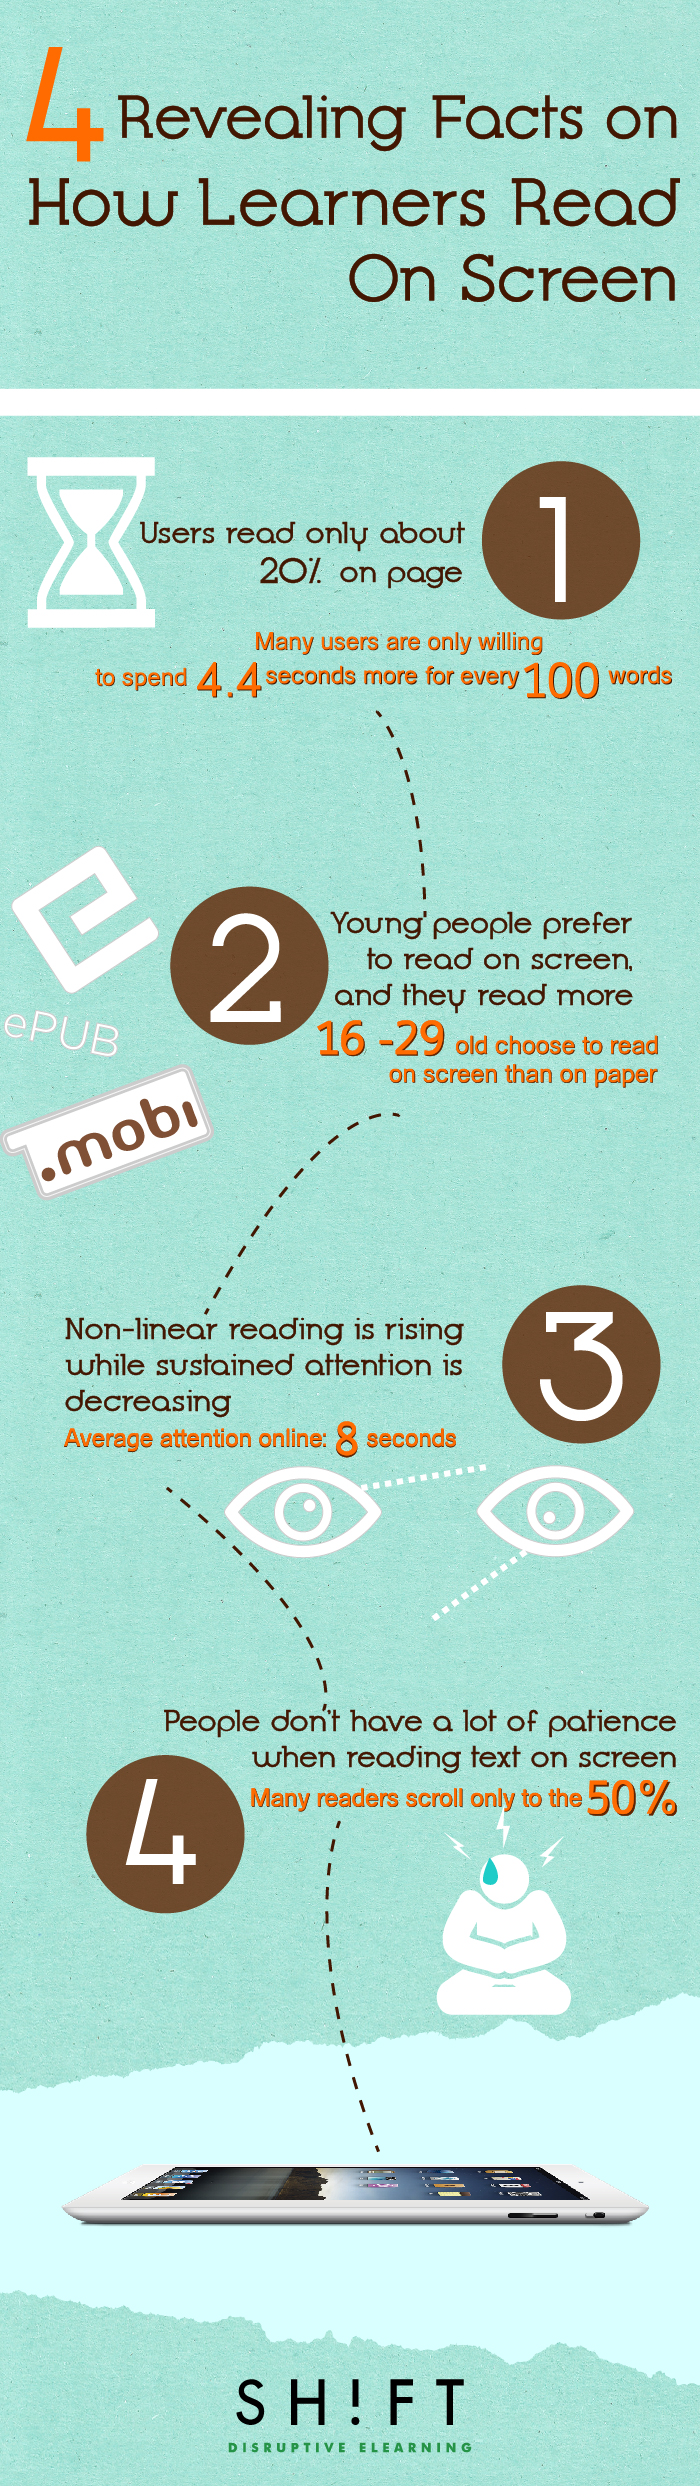 online reading habits